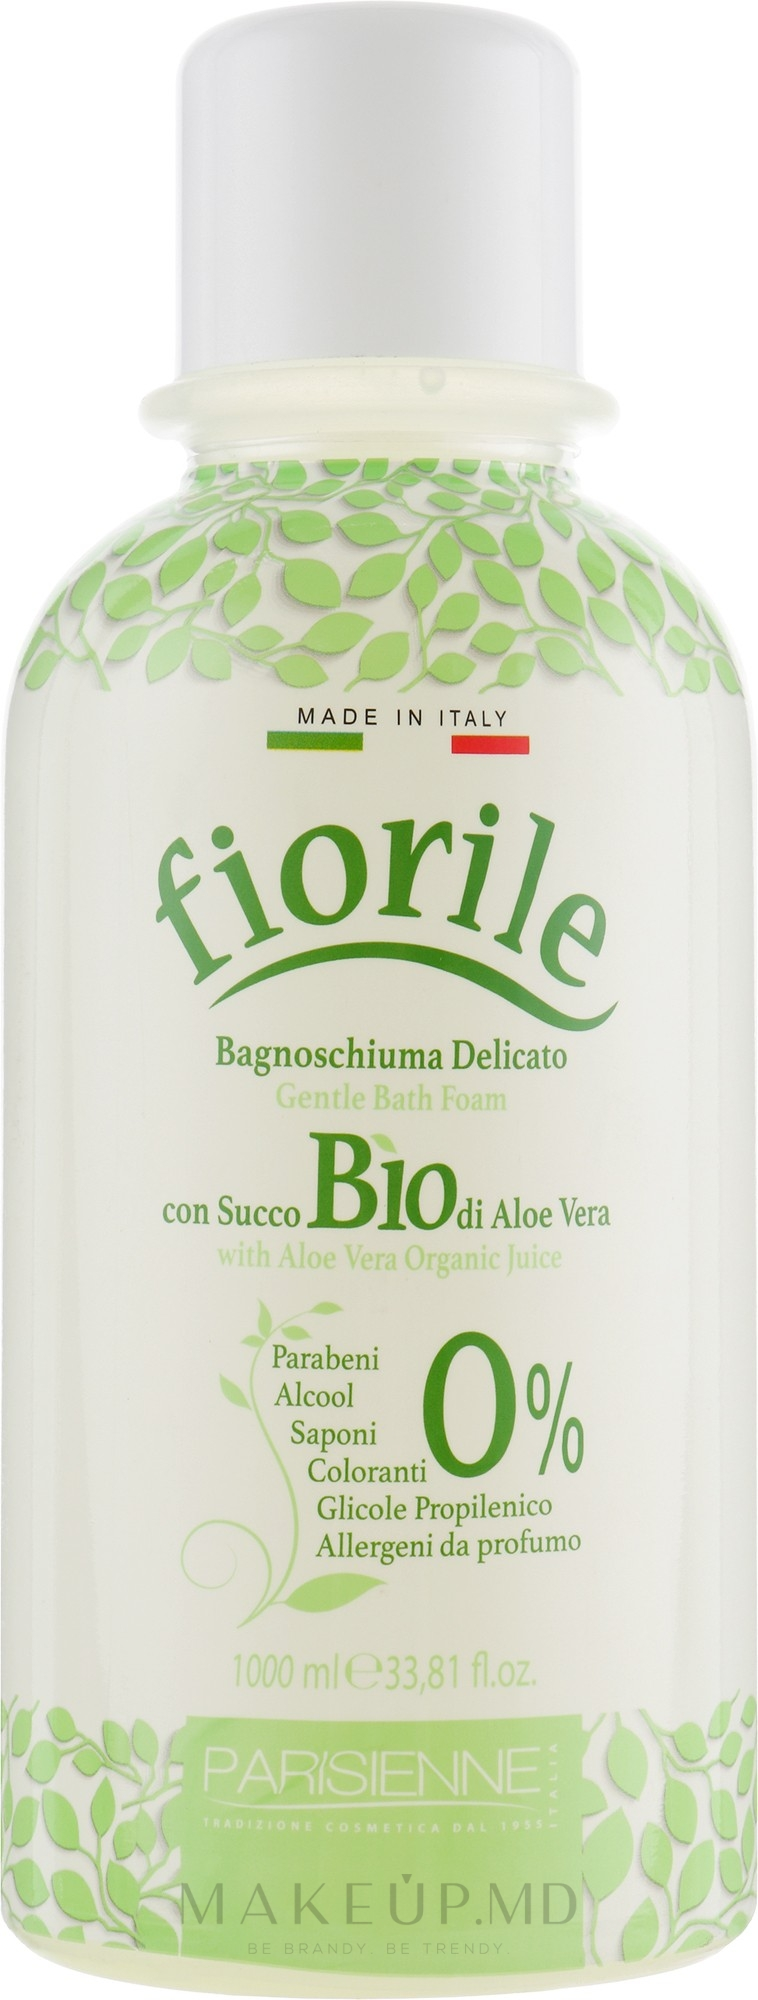 "Spumă de baie ""Aloe Vera"" - Parisienne Italia Fiorile BIO Aloe Vera Bath Foam — Imagine 1000 ml"